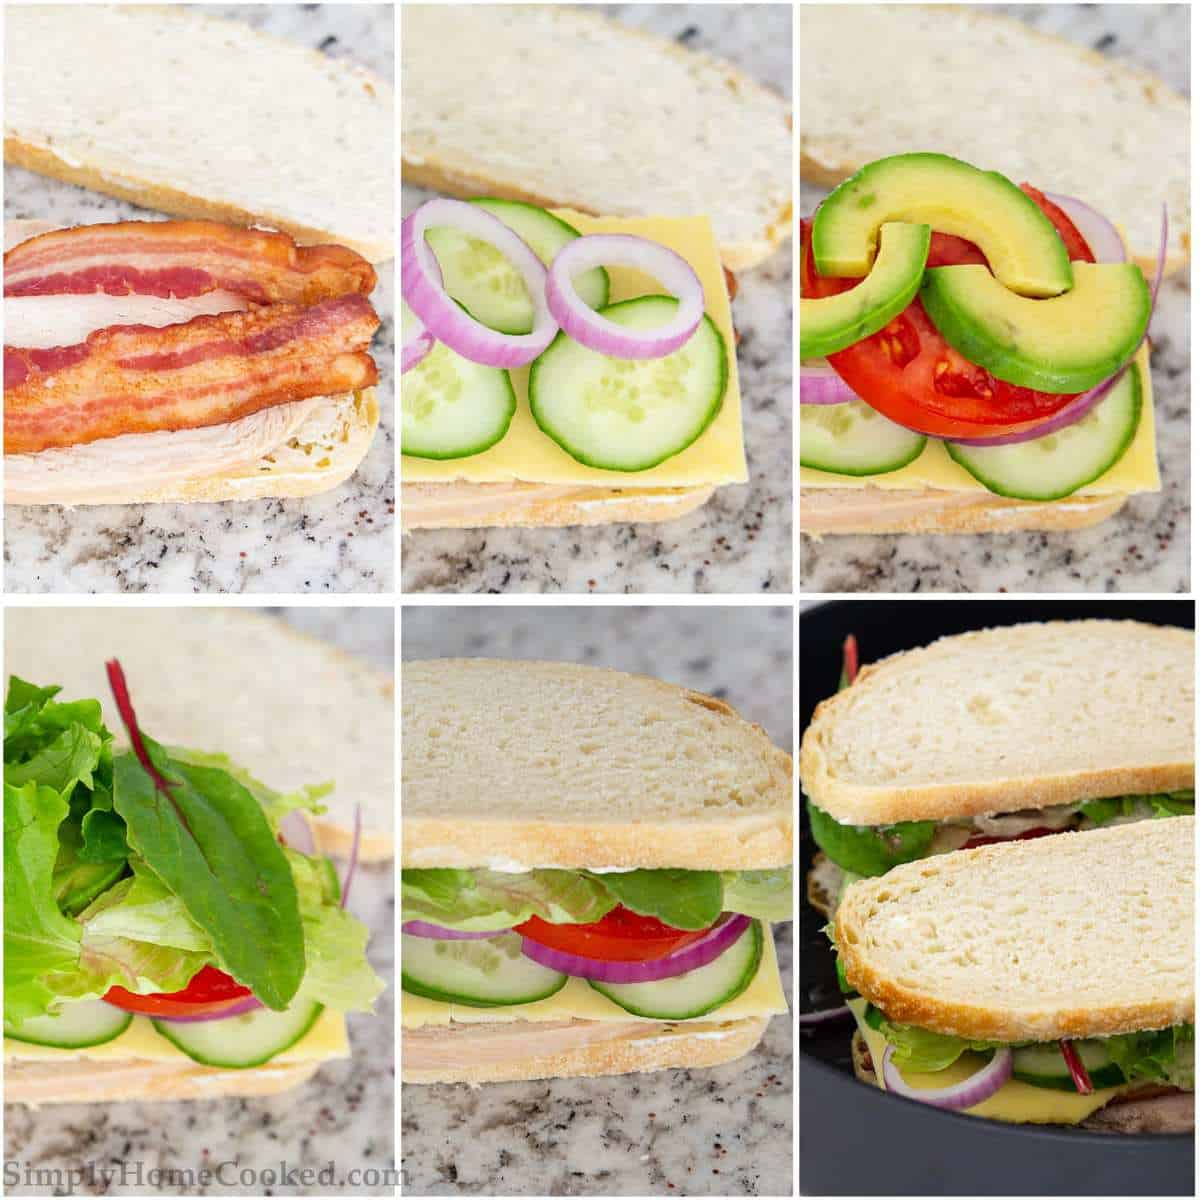 sliced sourdough bread with bacon, cucumbers, red onion, avocado, tomatoes, and lettuce on top